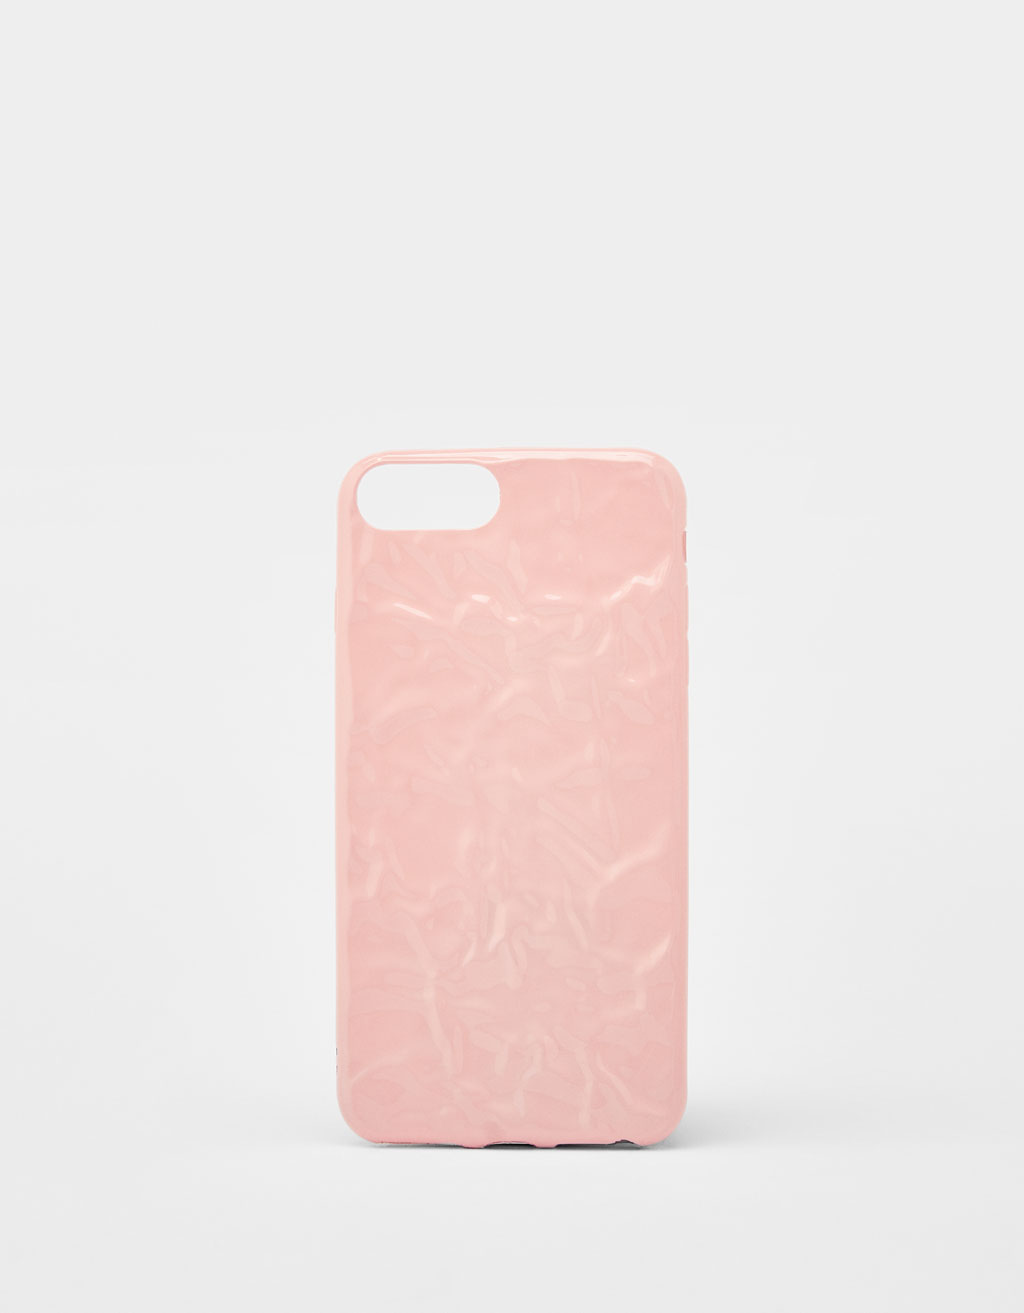 Carcasa Iphone textura 6 plus / 7 plus / 8 plus